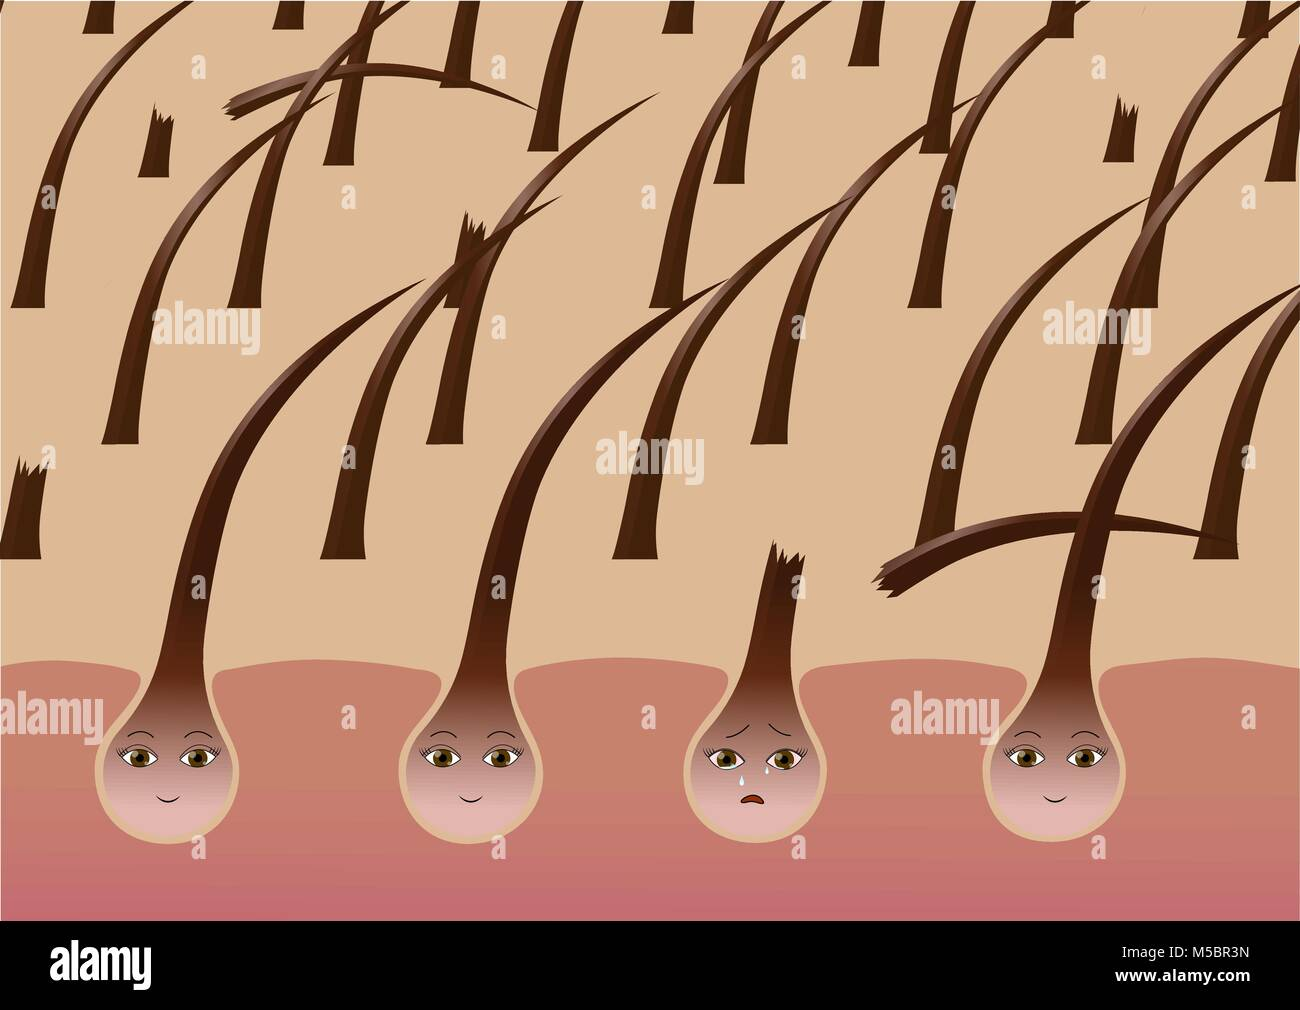 Cartoon hair follicles on the scalp suffer from brittleness - Stock Image